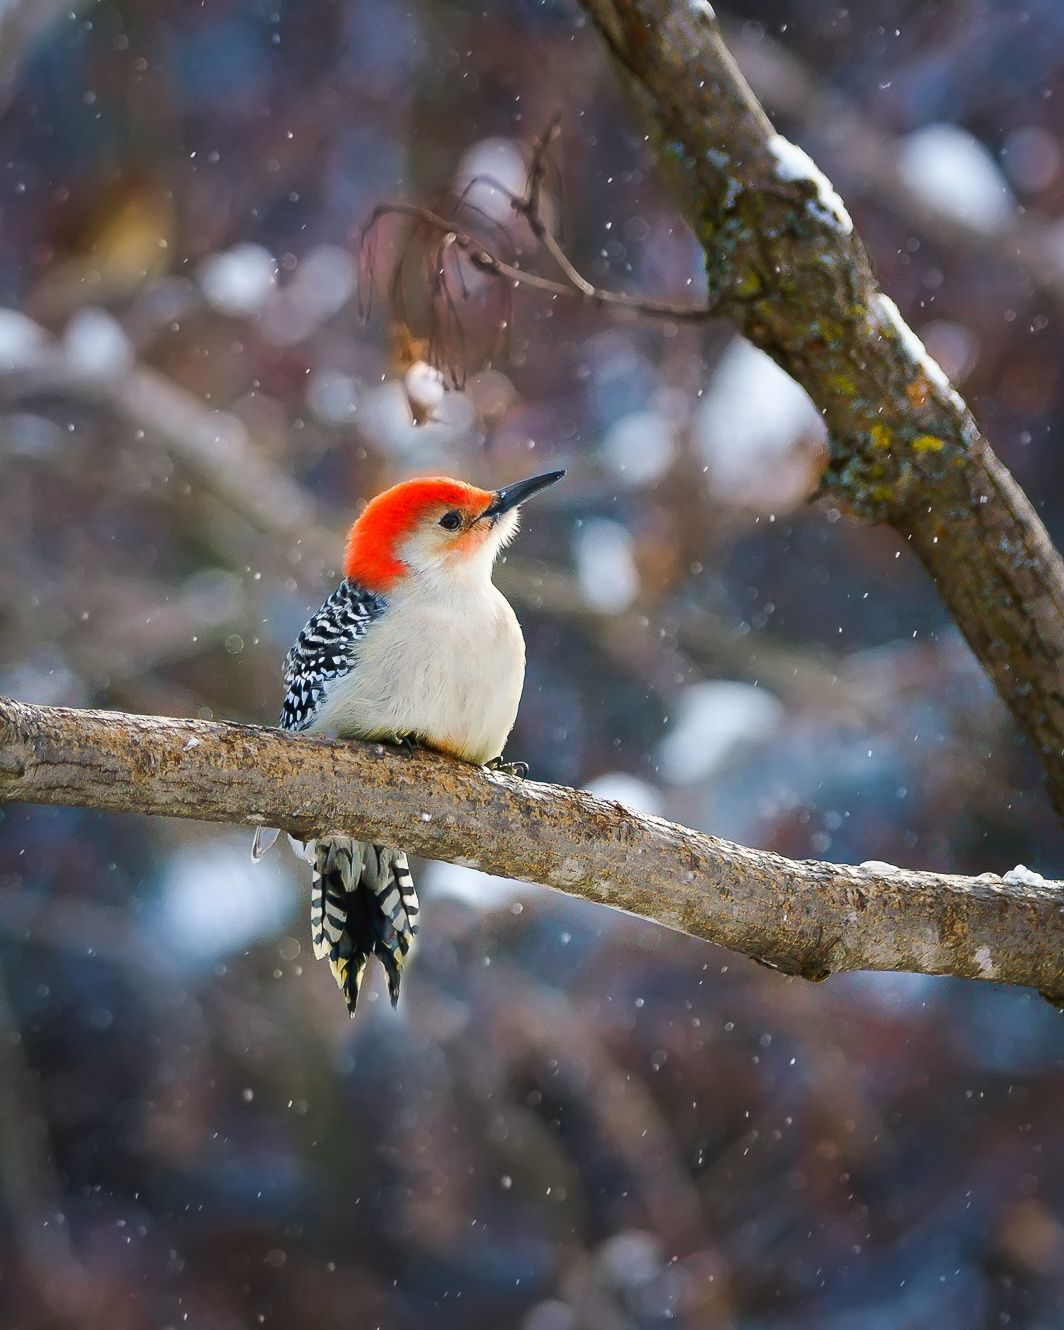 Red bellied woodpecker by Chad Briesemeister